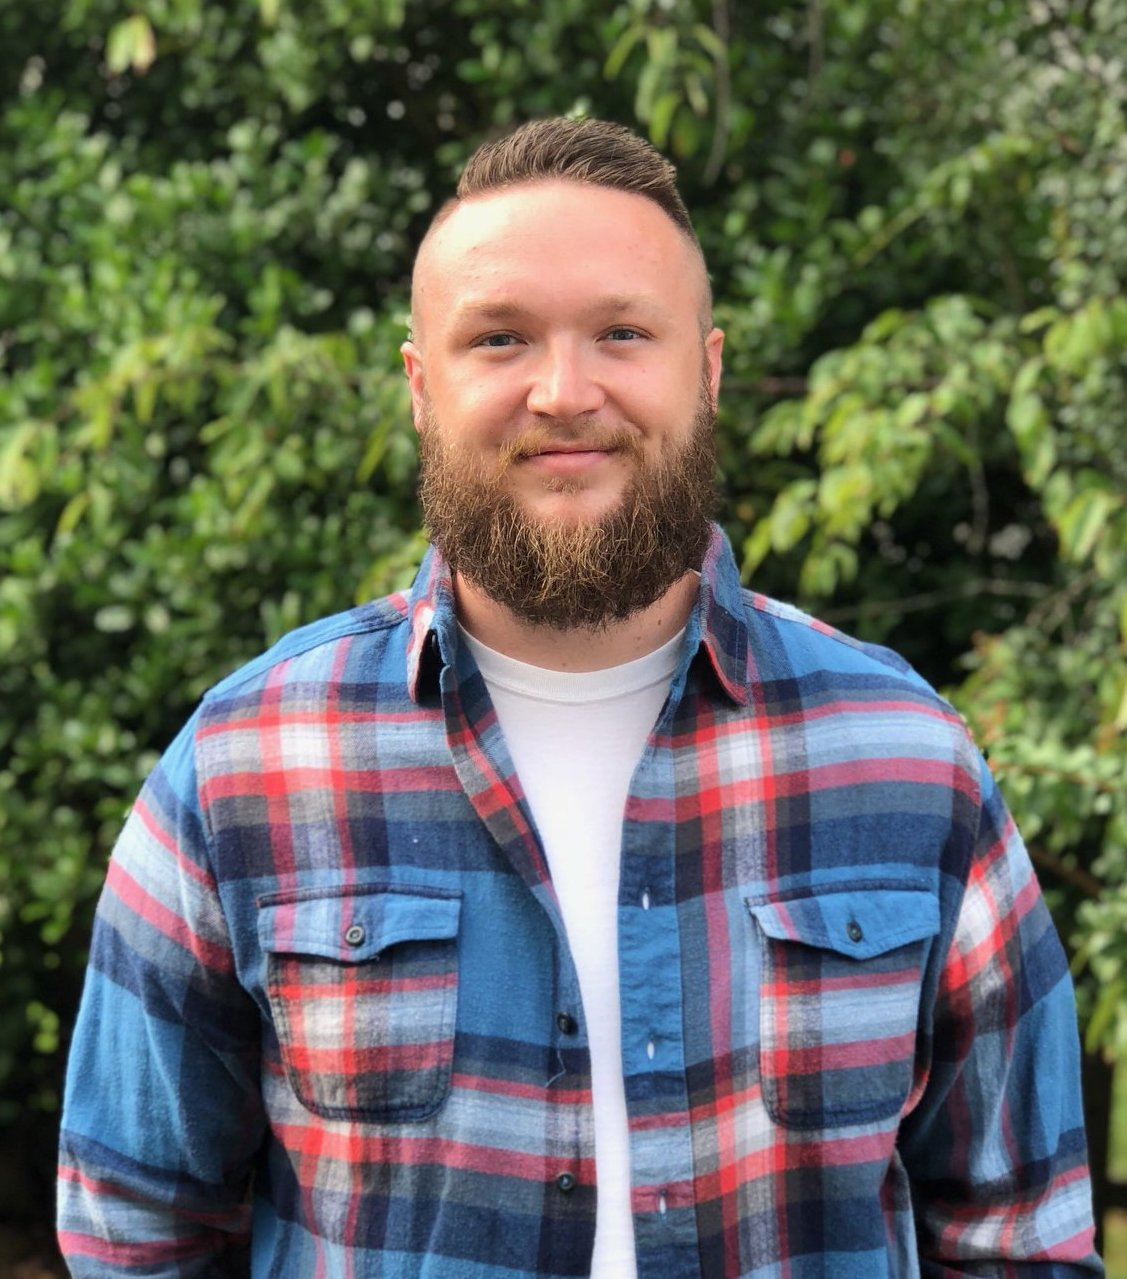 zach leiner - Growing and Equipping Youth Pastors